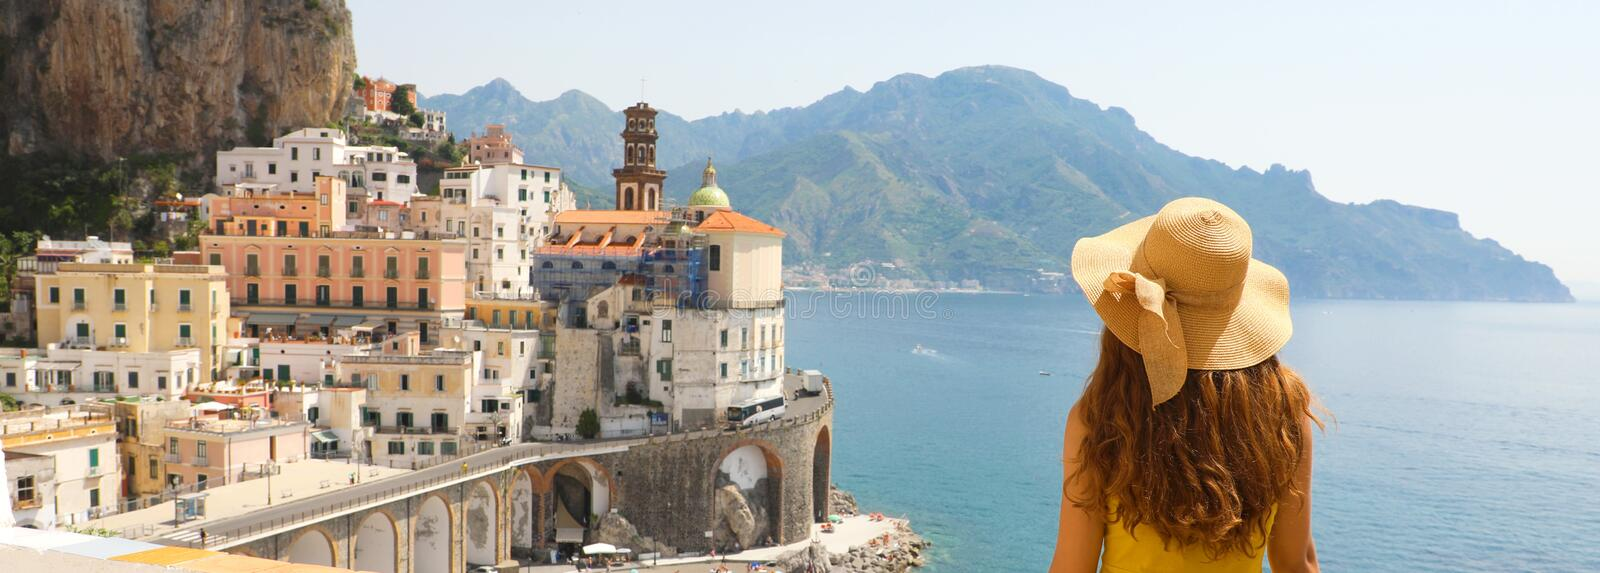 Summer holiday in Italy panorama banner. Back view of young woman with straw hat and yellow dress with Atrani village royalty free stock images